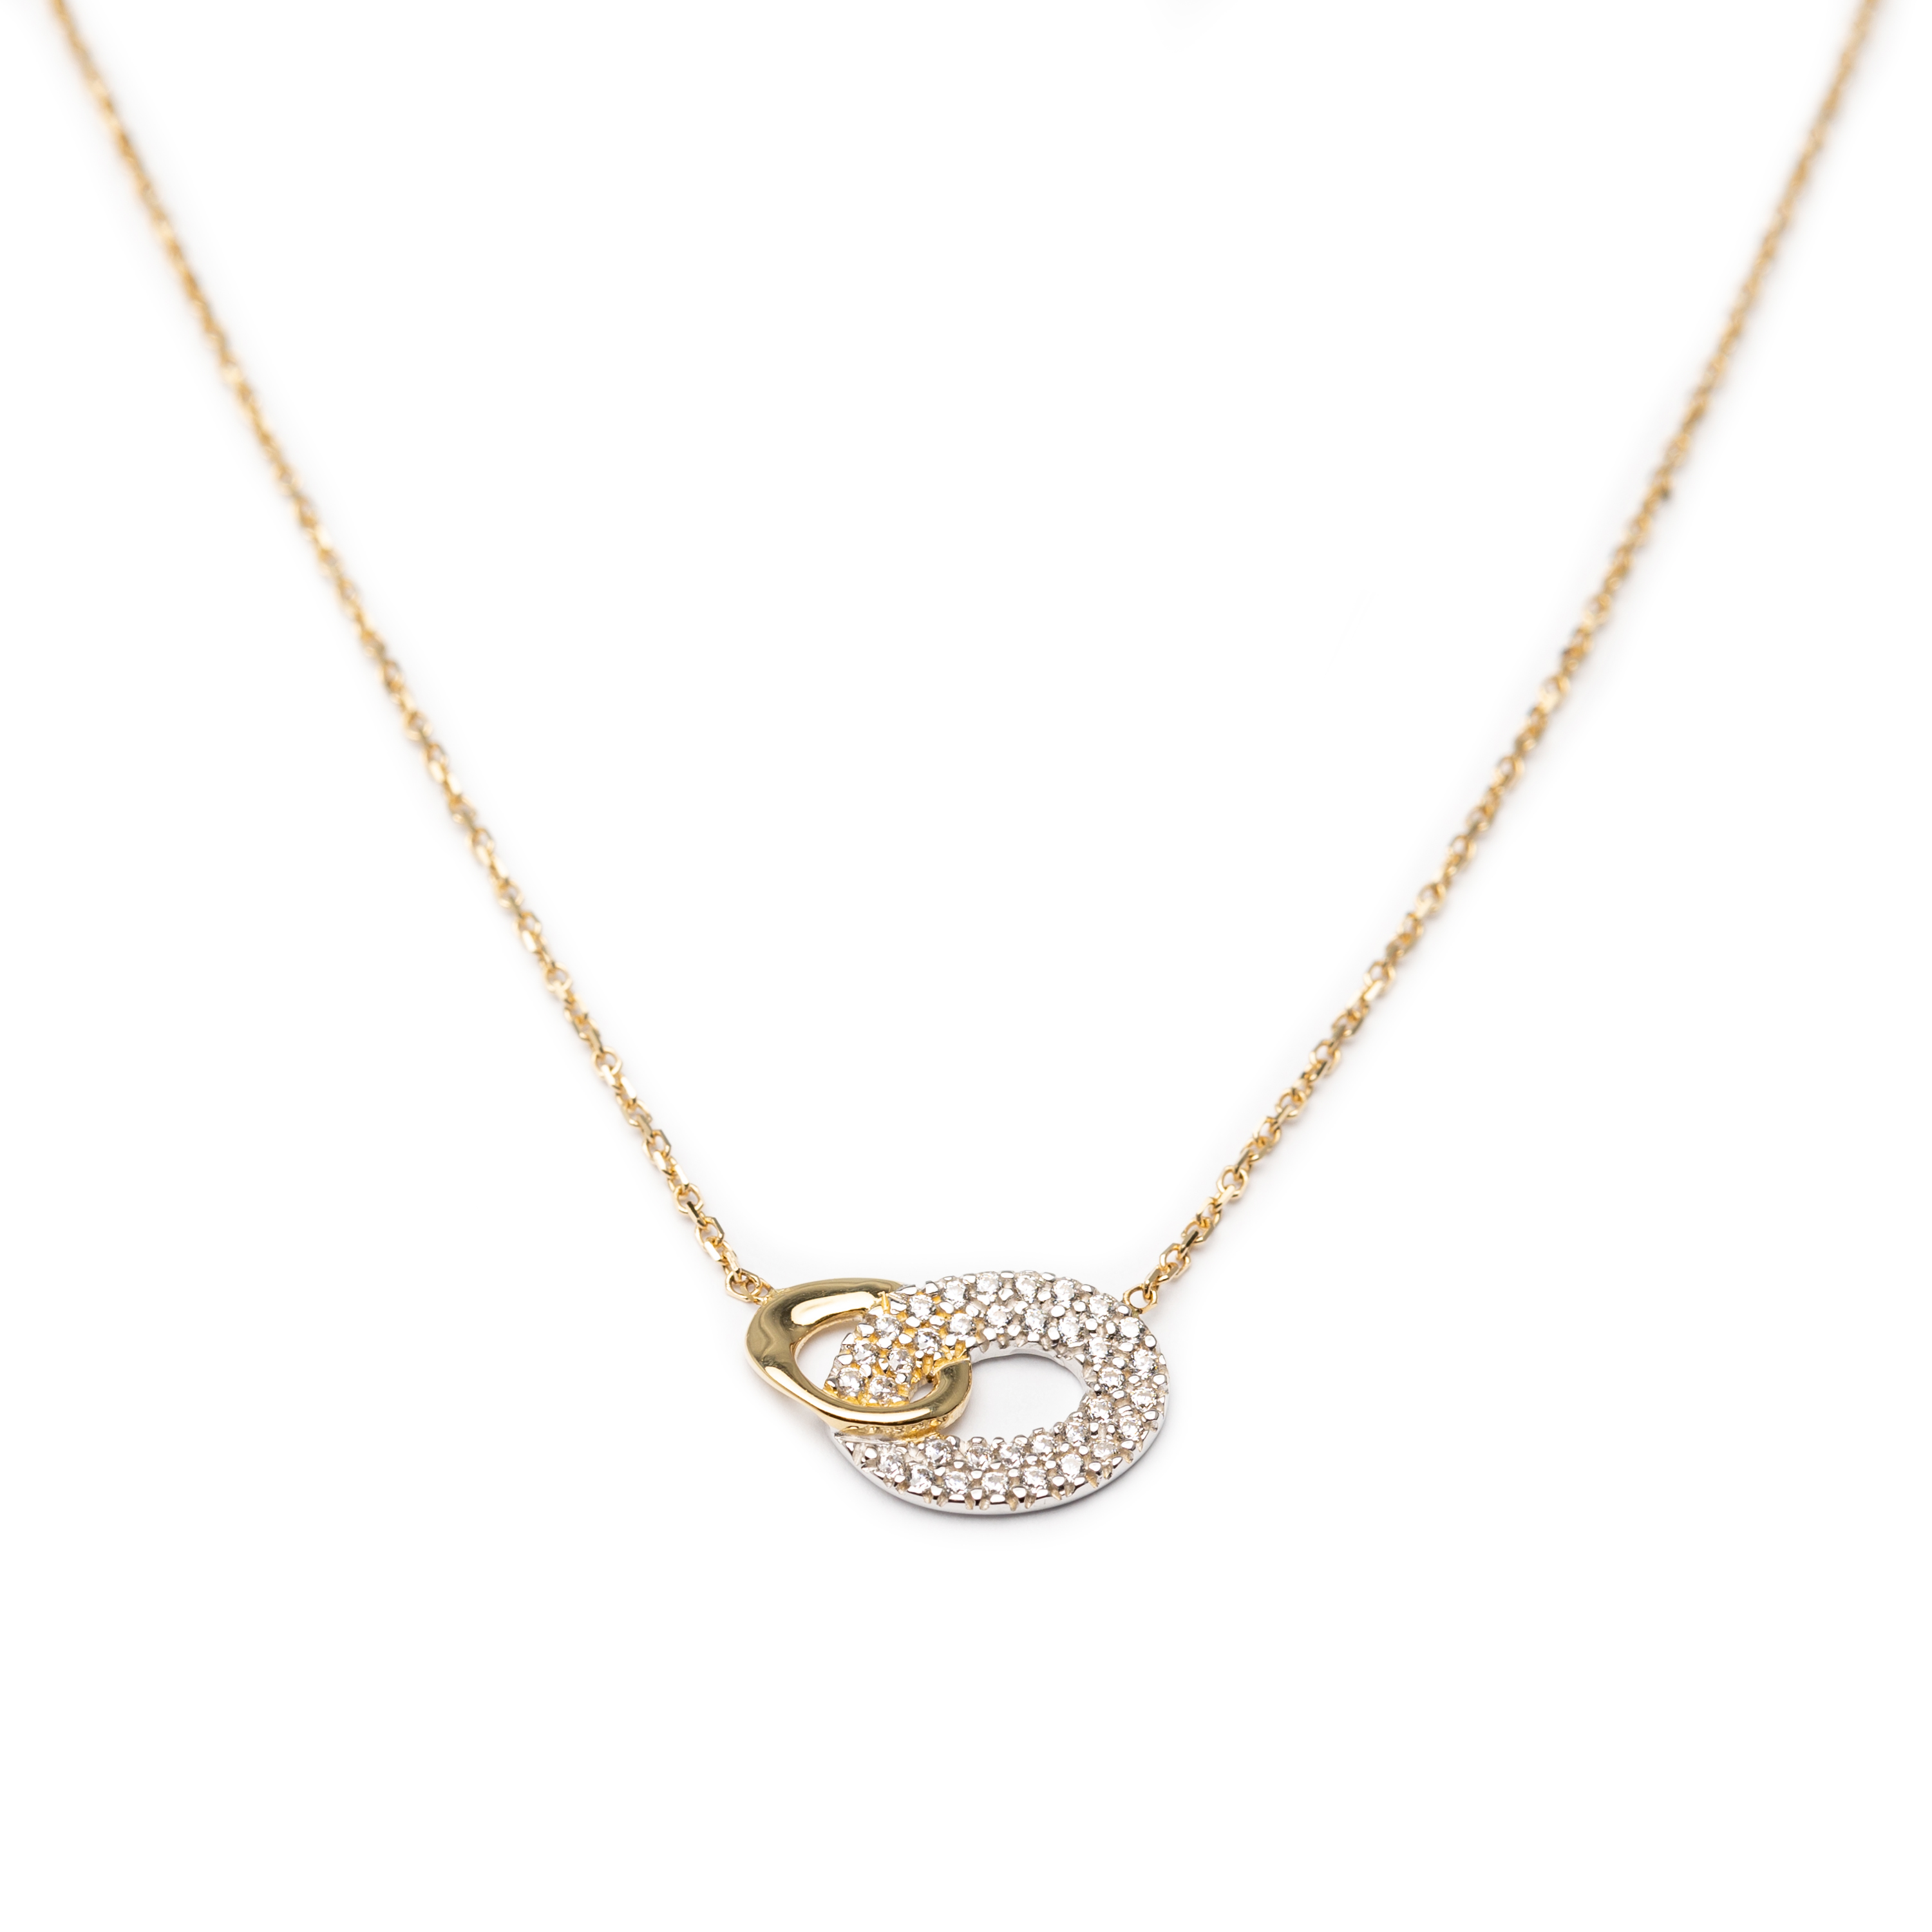 18kt Yellow & White Gold Designed Necklace.